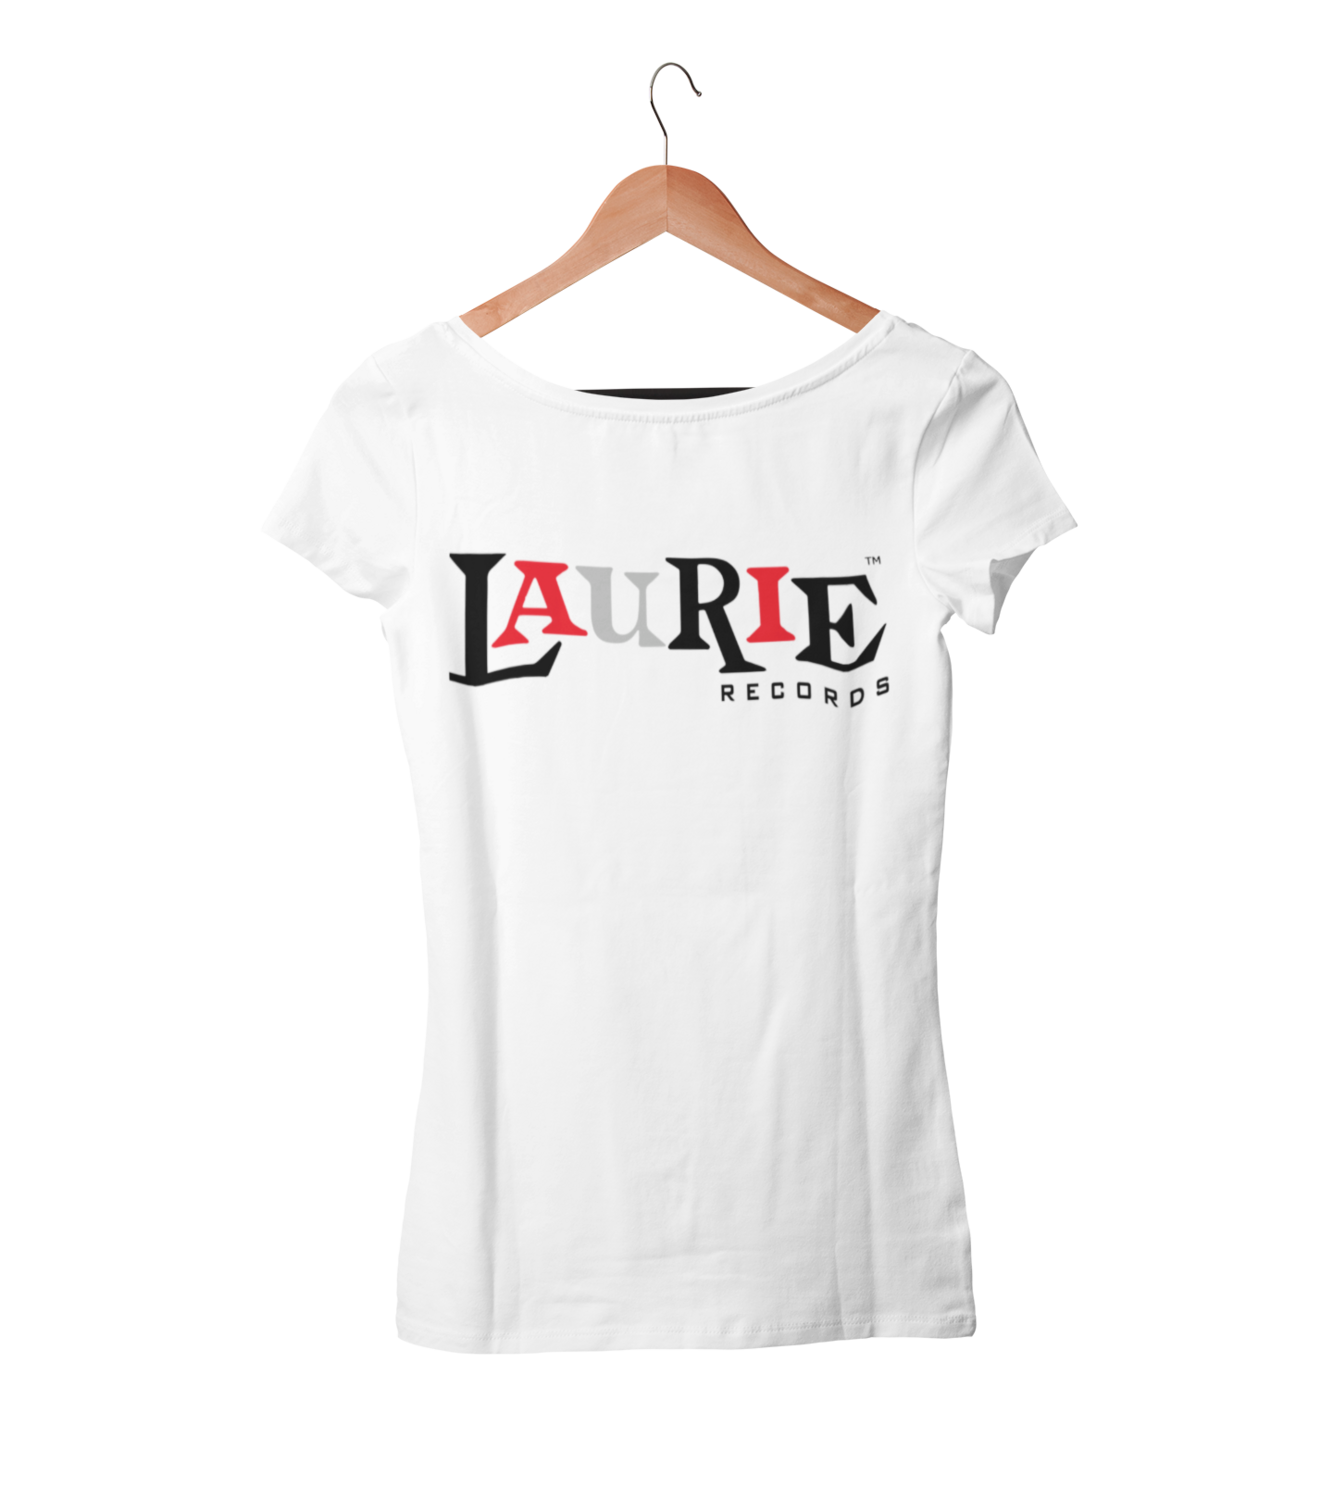 LAURIE RECORDS T-SHIRT WOMAN